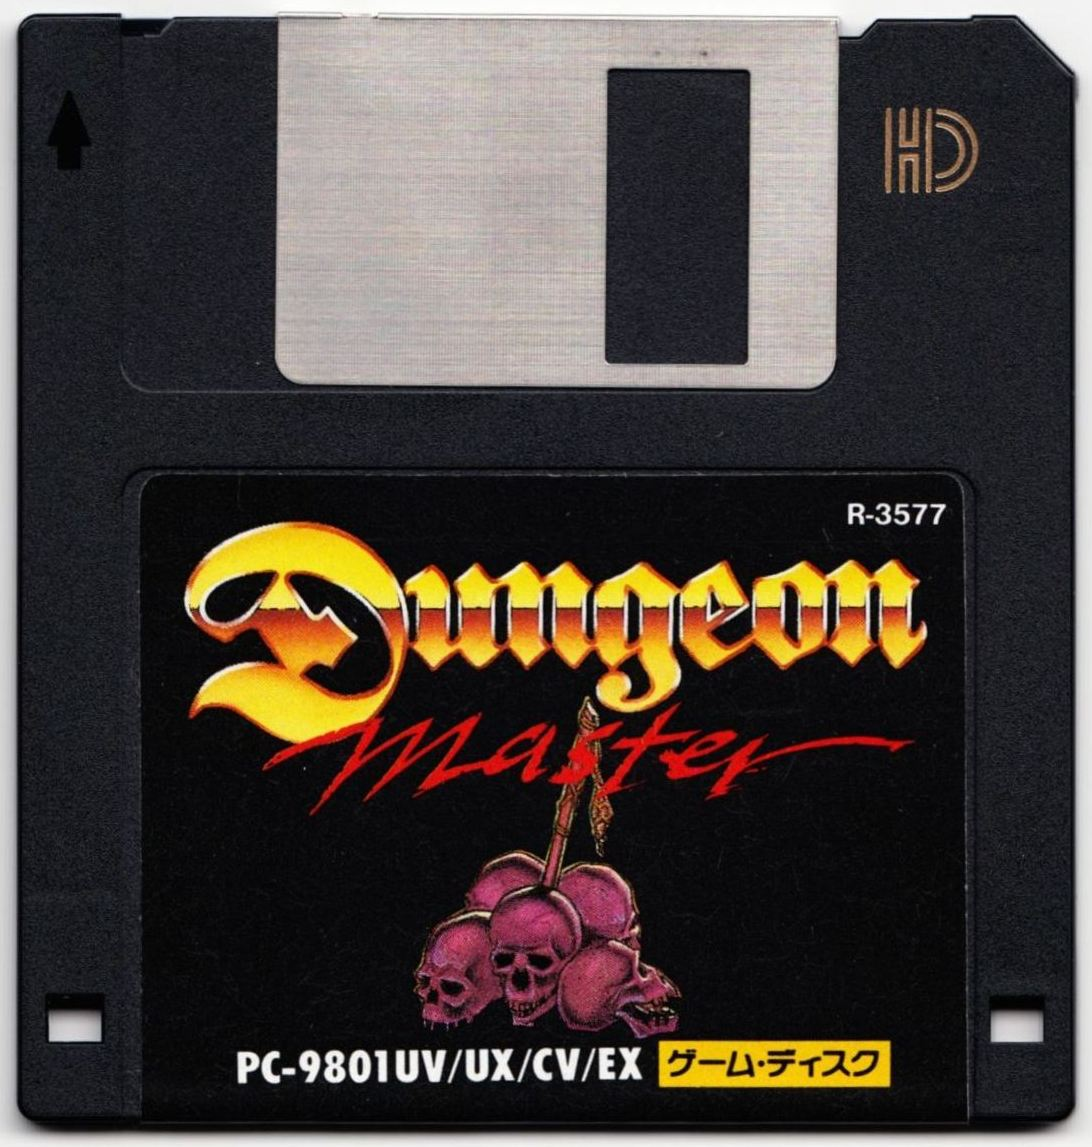 Game - Dungeon Master - JP - PC-9801 - 3.5-inch - Game Disk - Front - Scan